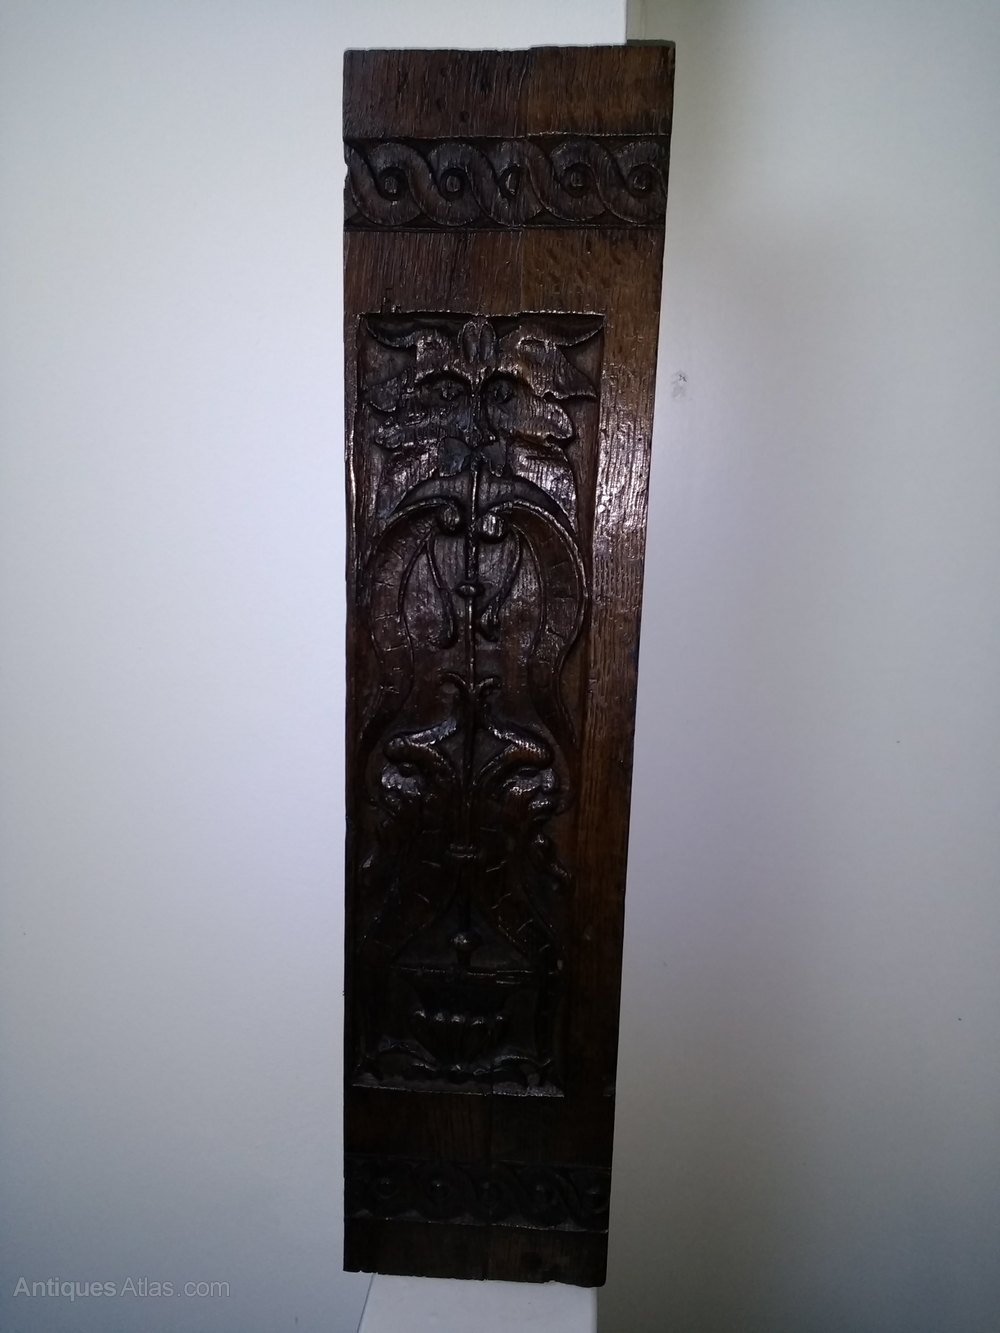 Antiques atlas fine early th century carved oak panel